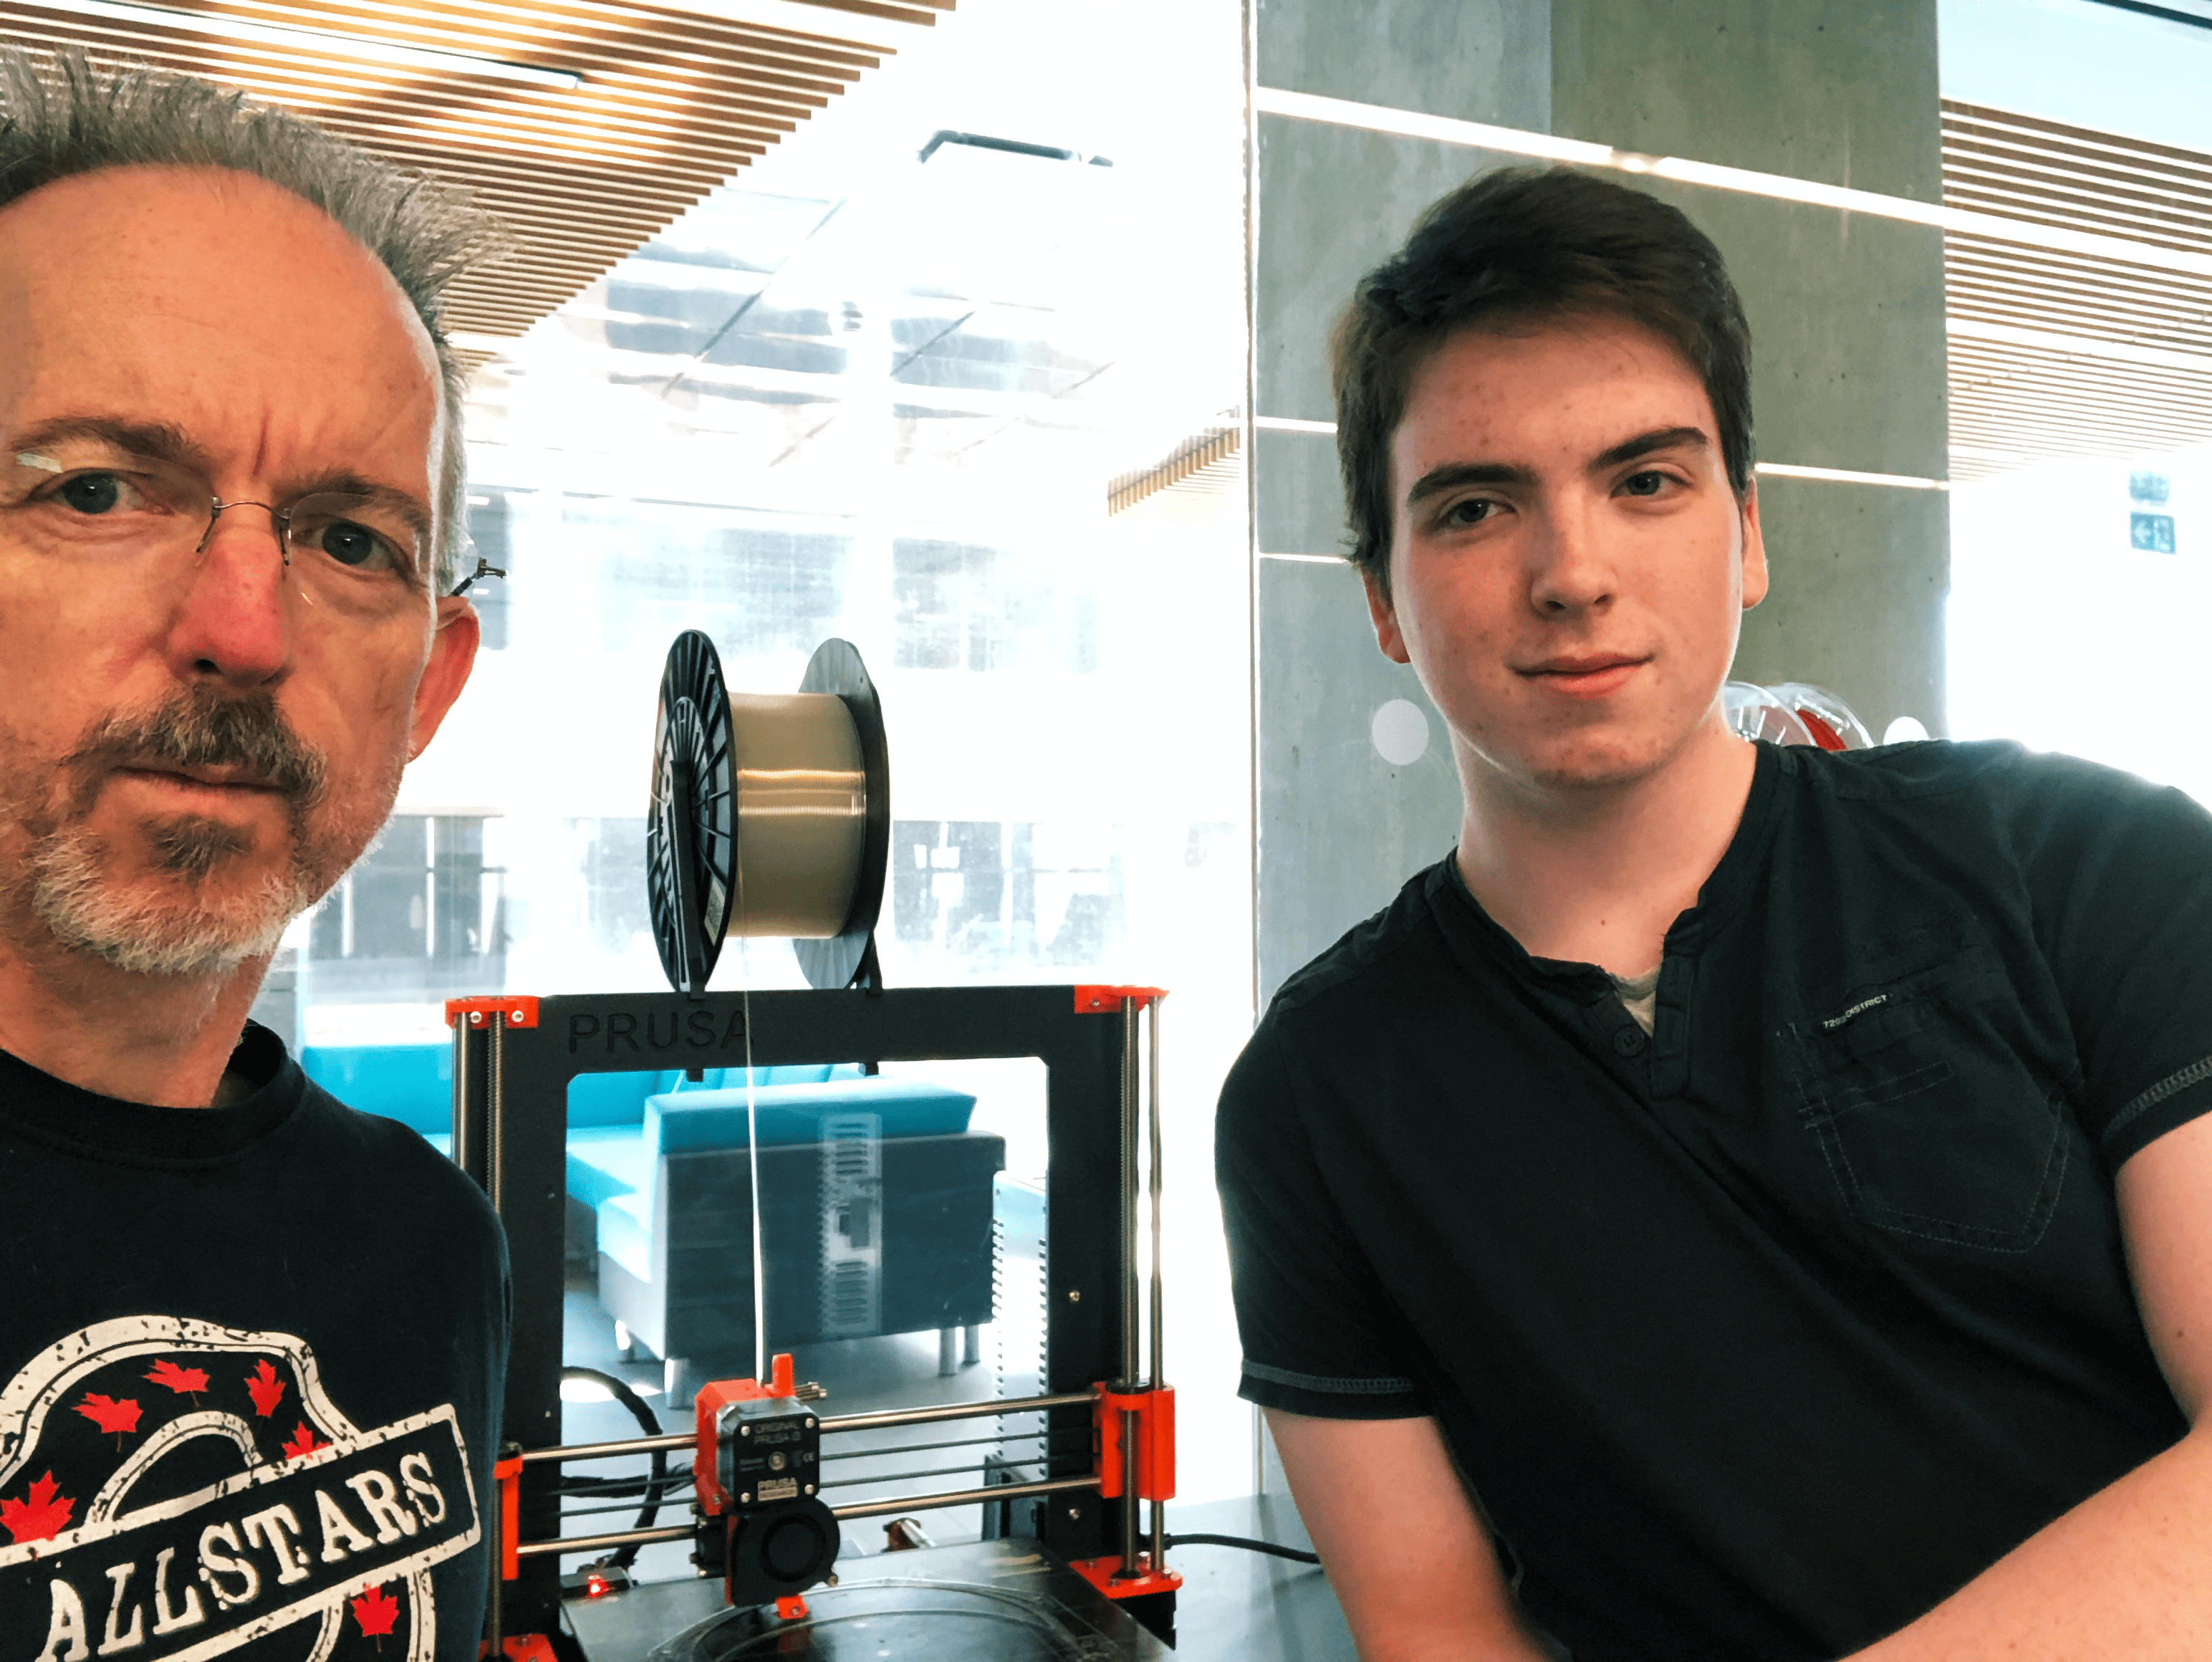 McMaster Engineering professor and his son creating face shields for healthcare workers